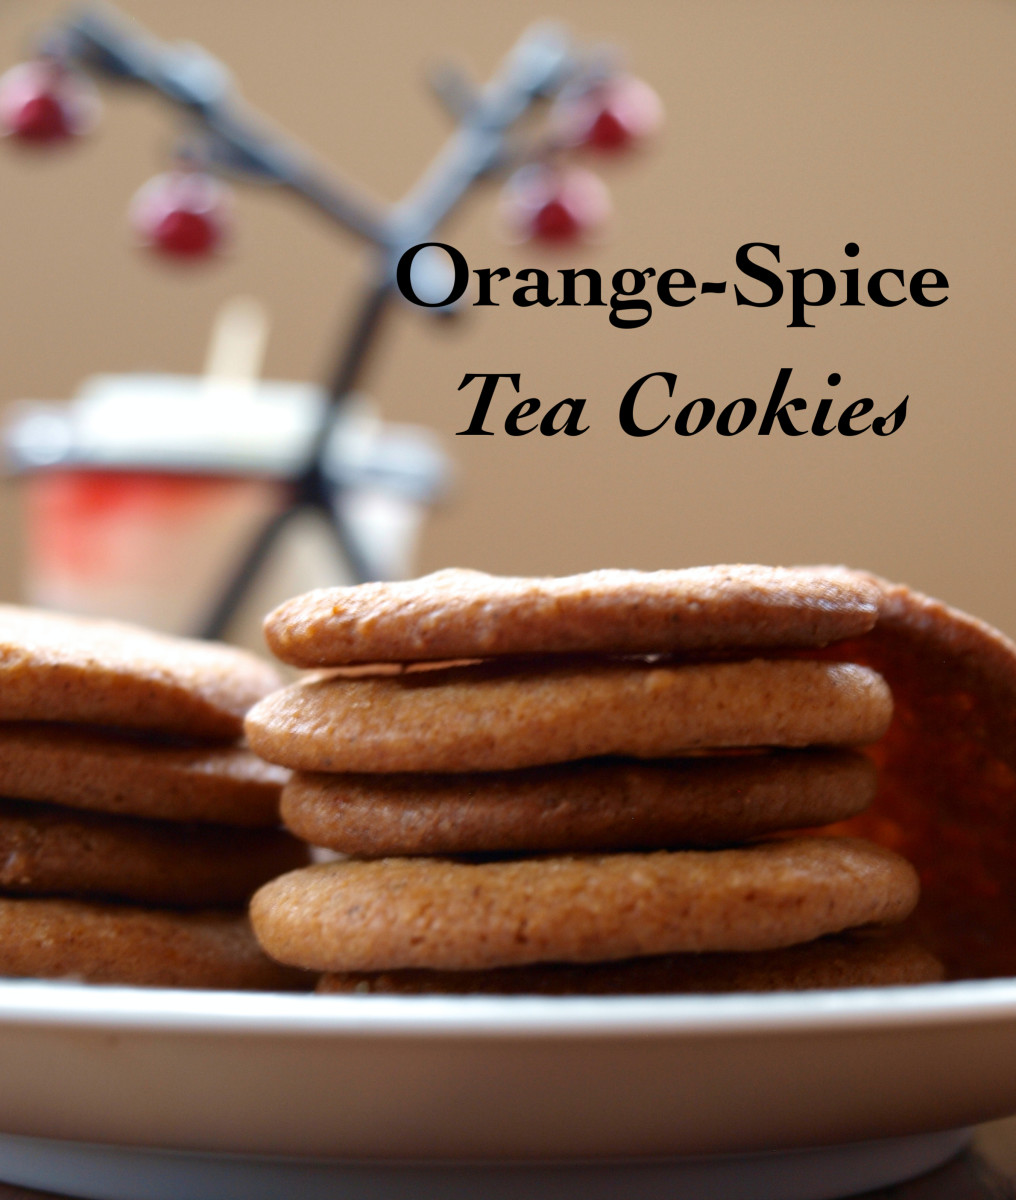 Light and Crisp Orange-Spice Tea Cookies Recipe